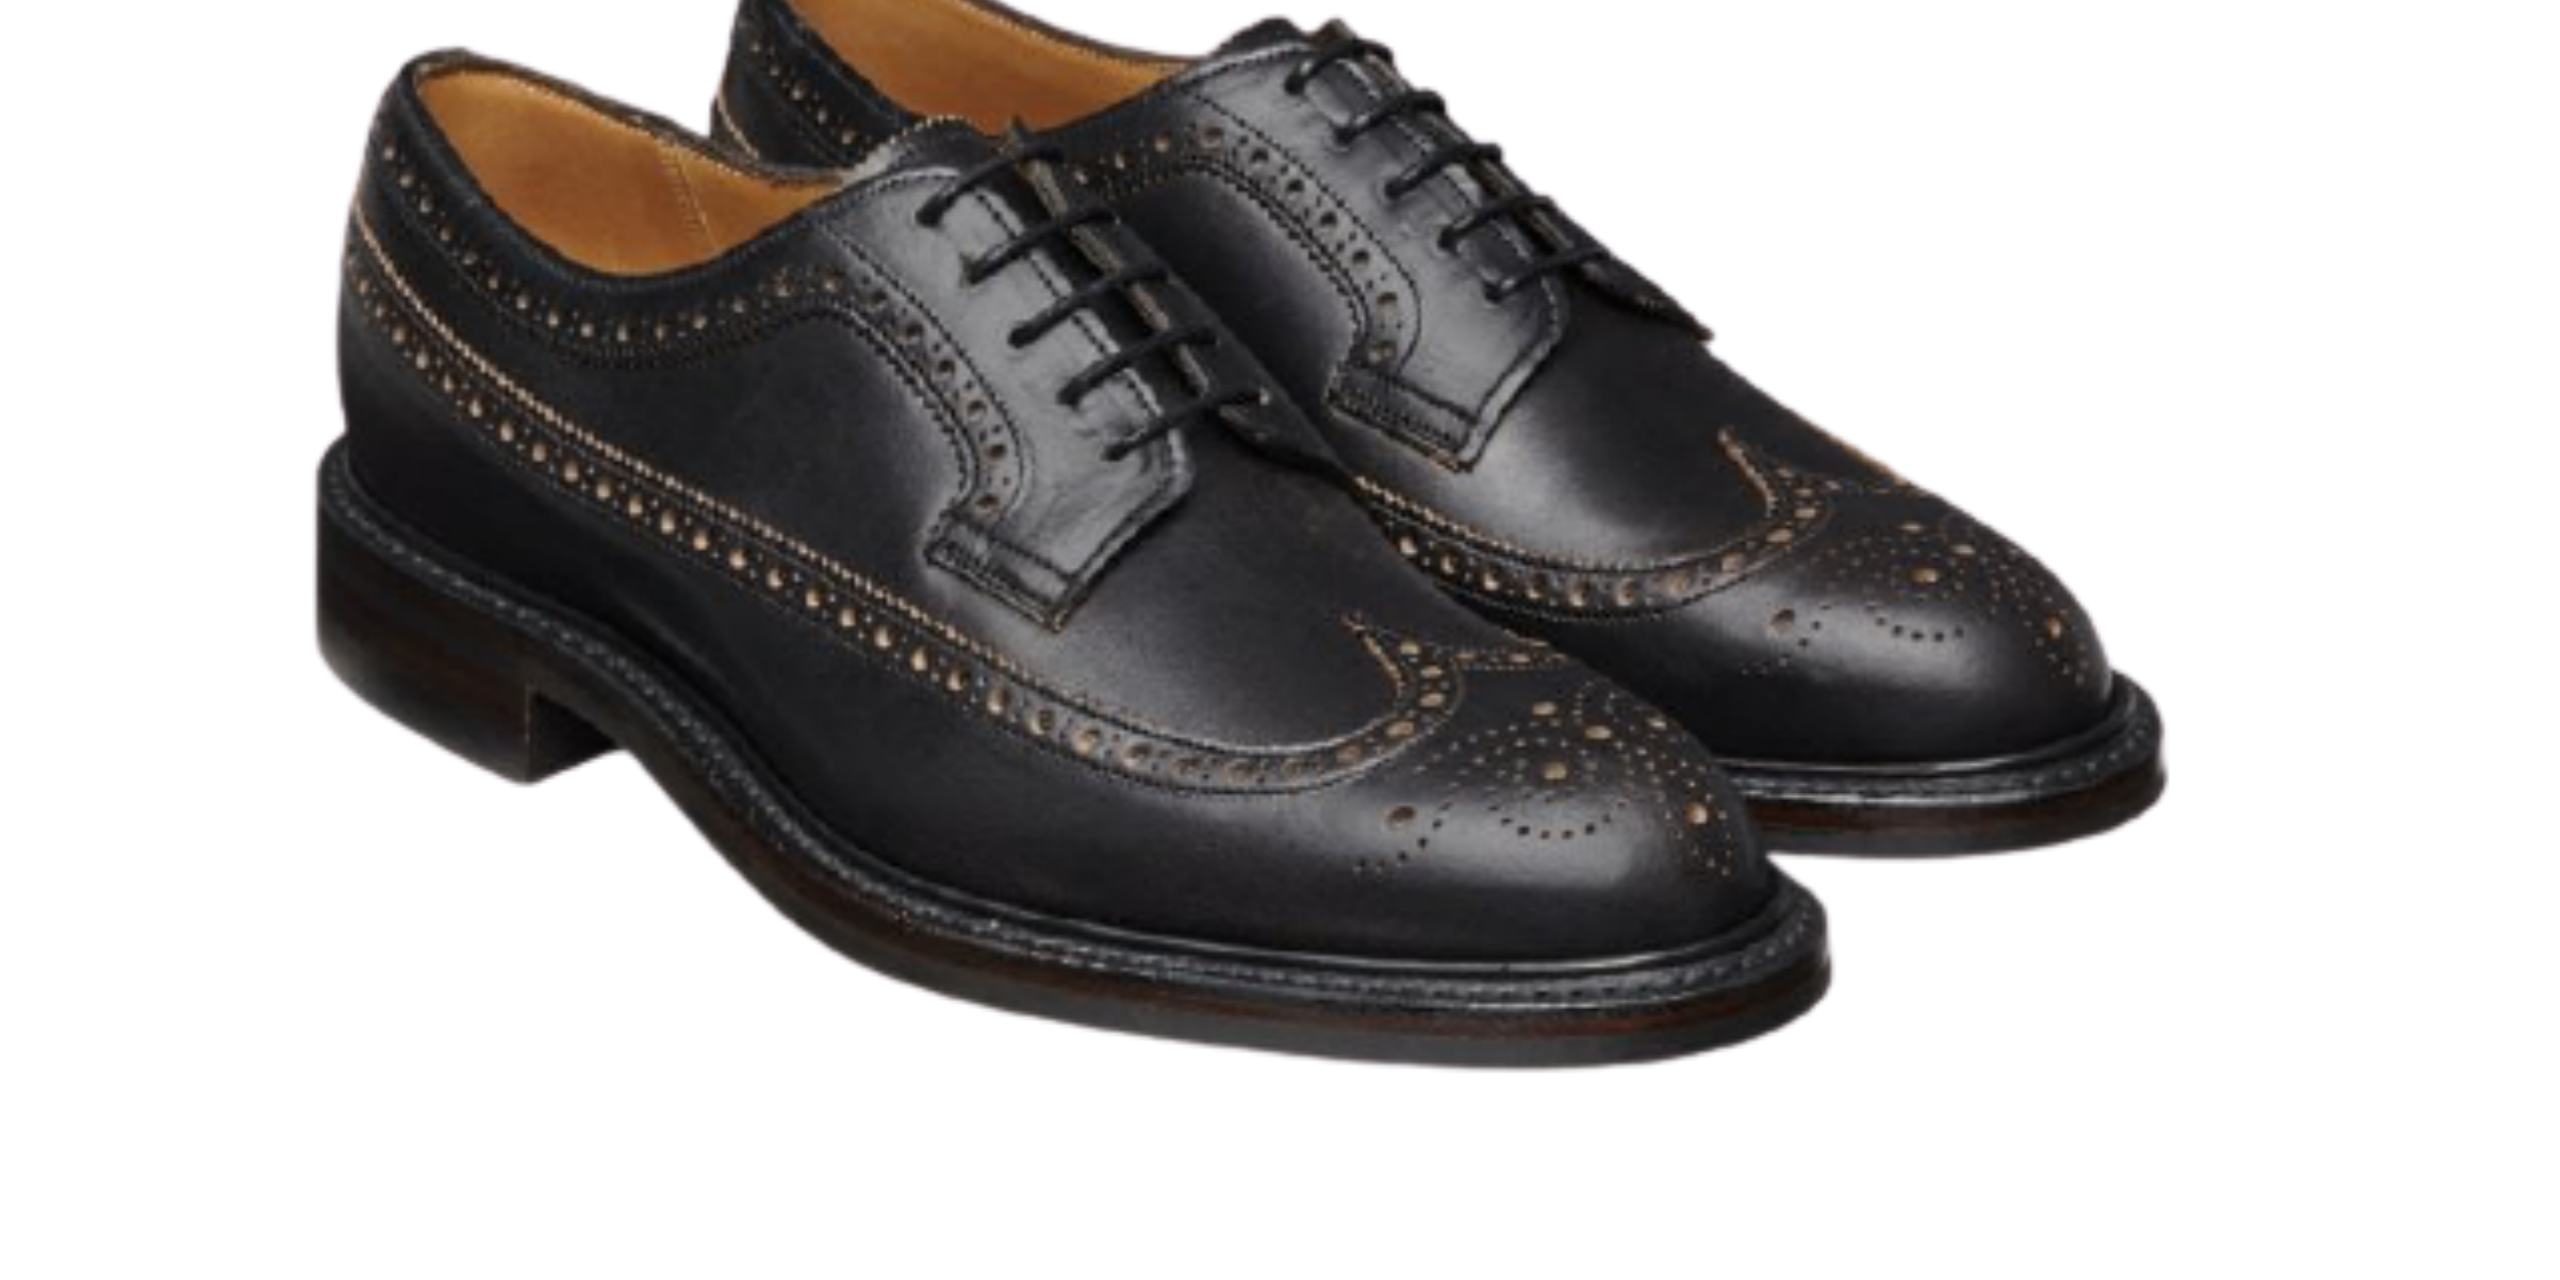 Longwing Brogue —Types of Men's Formal Shoes